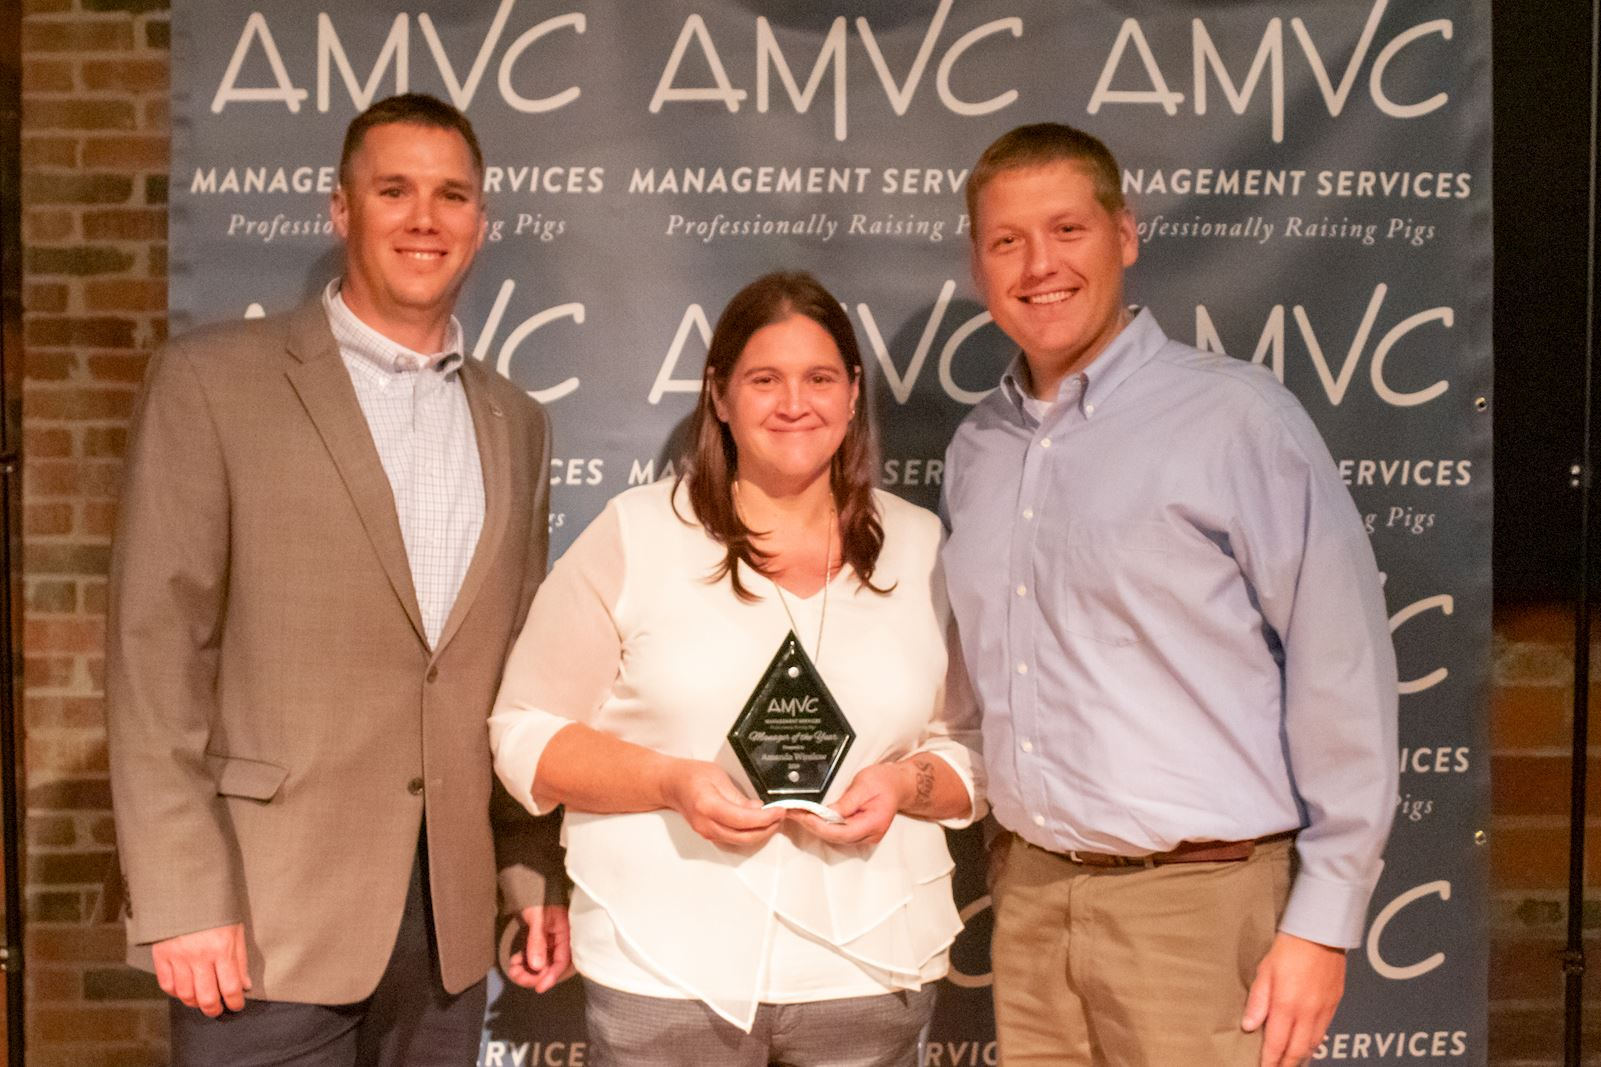 Winslow is named 2019 AMVC Manager of the Year